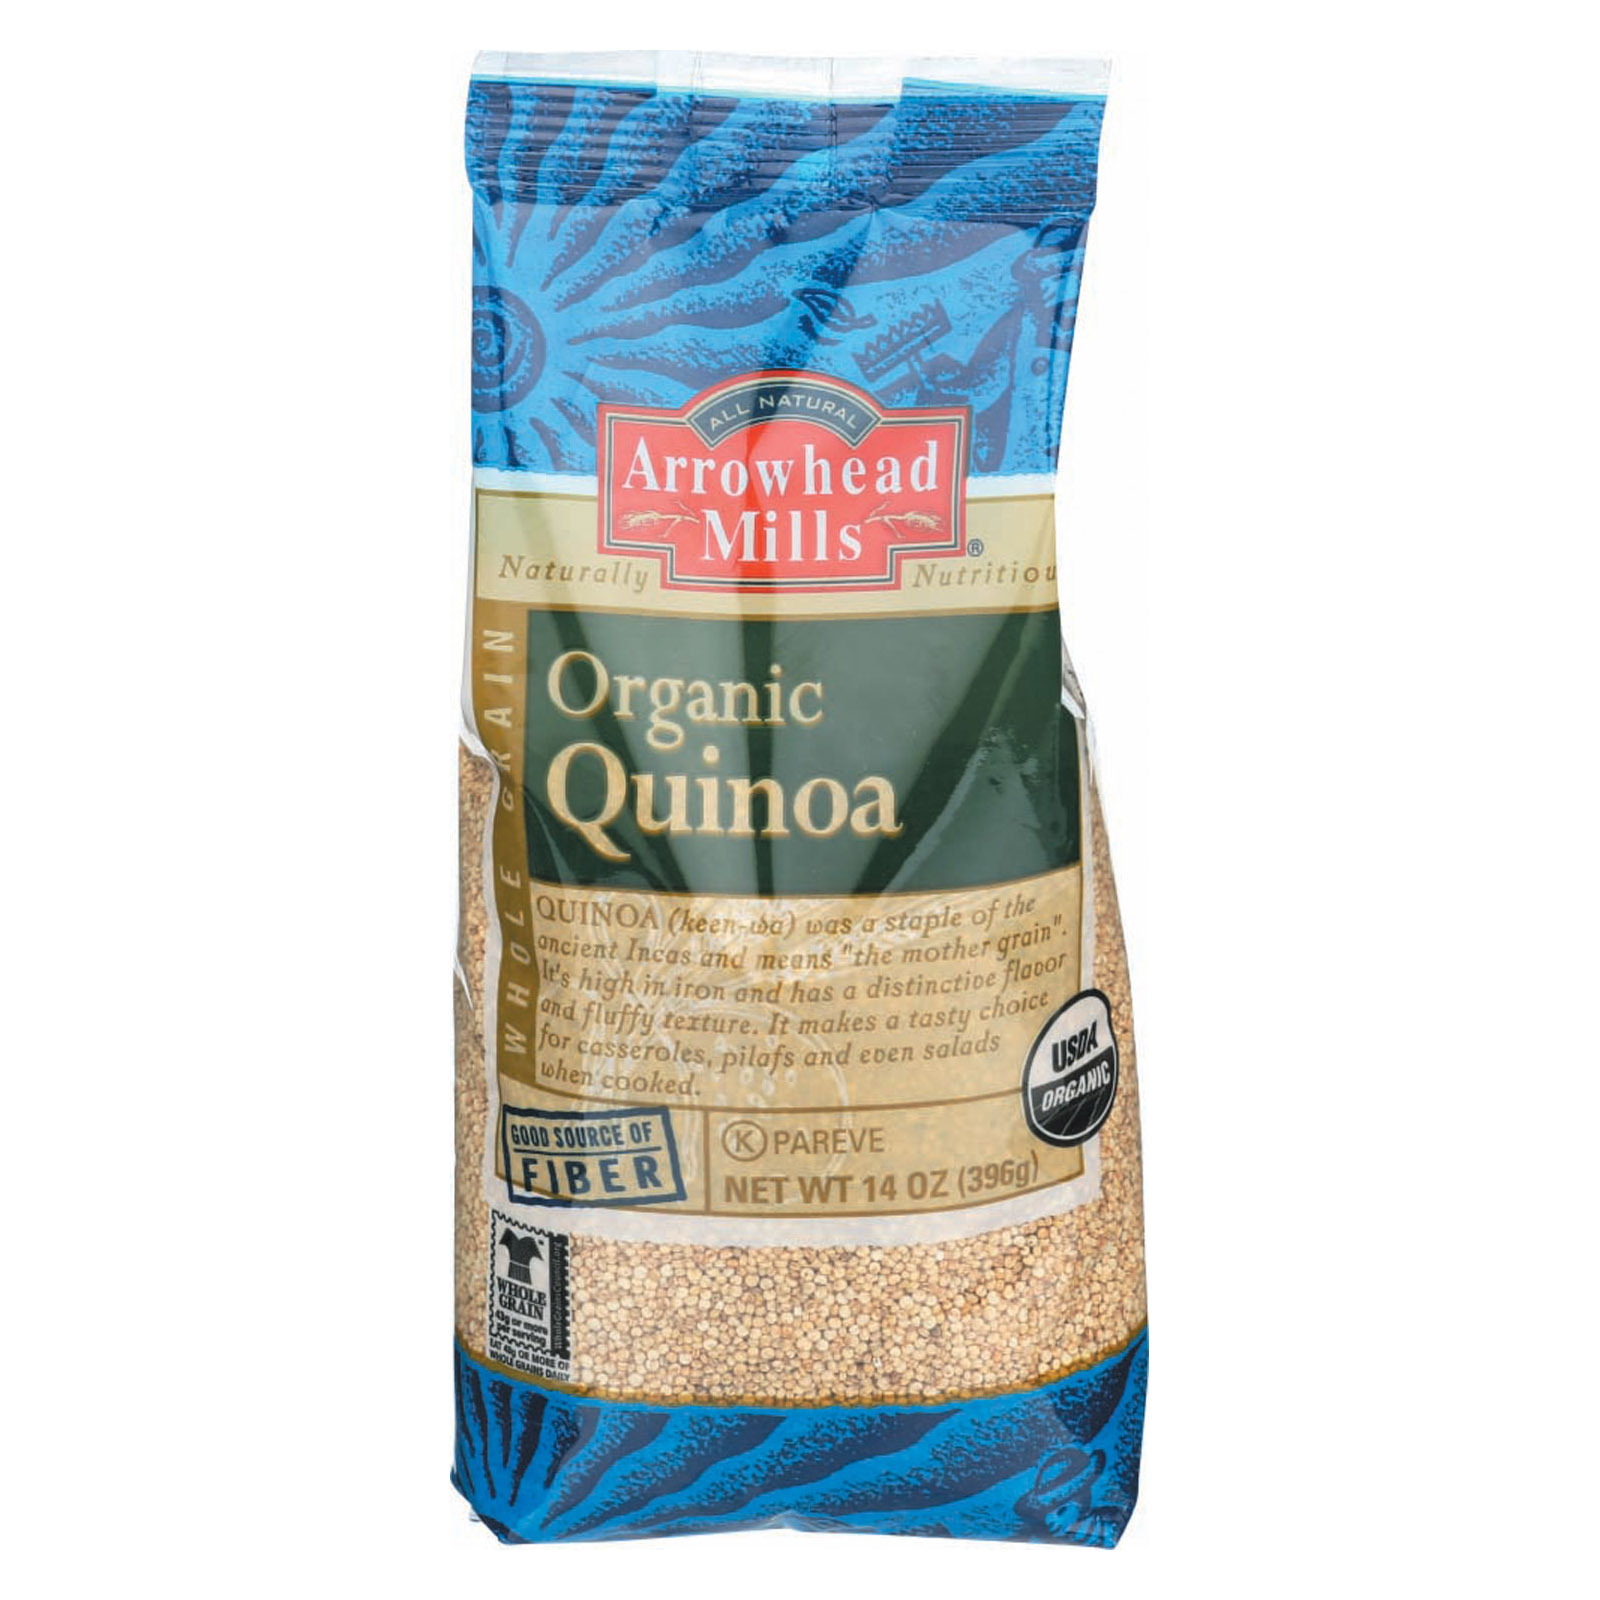 Arrowhead Mills Organic Quinoa - Case of 6 - 14 oz.